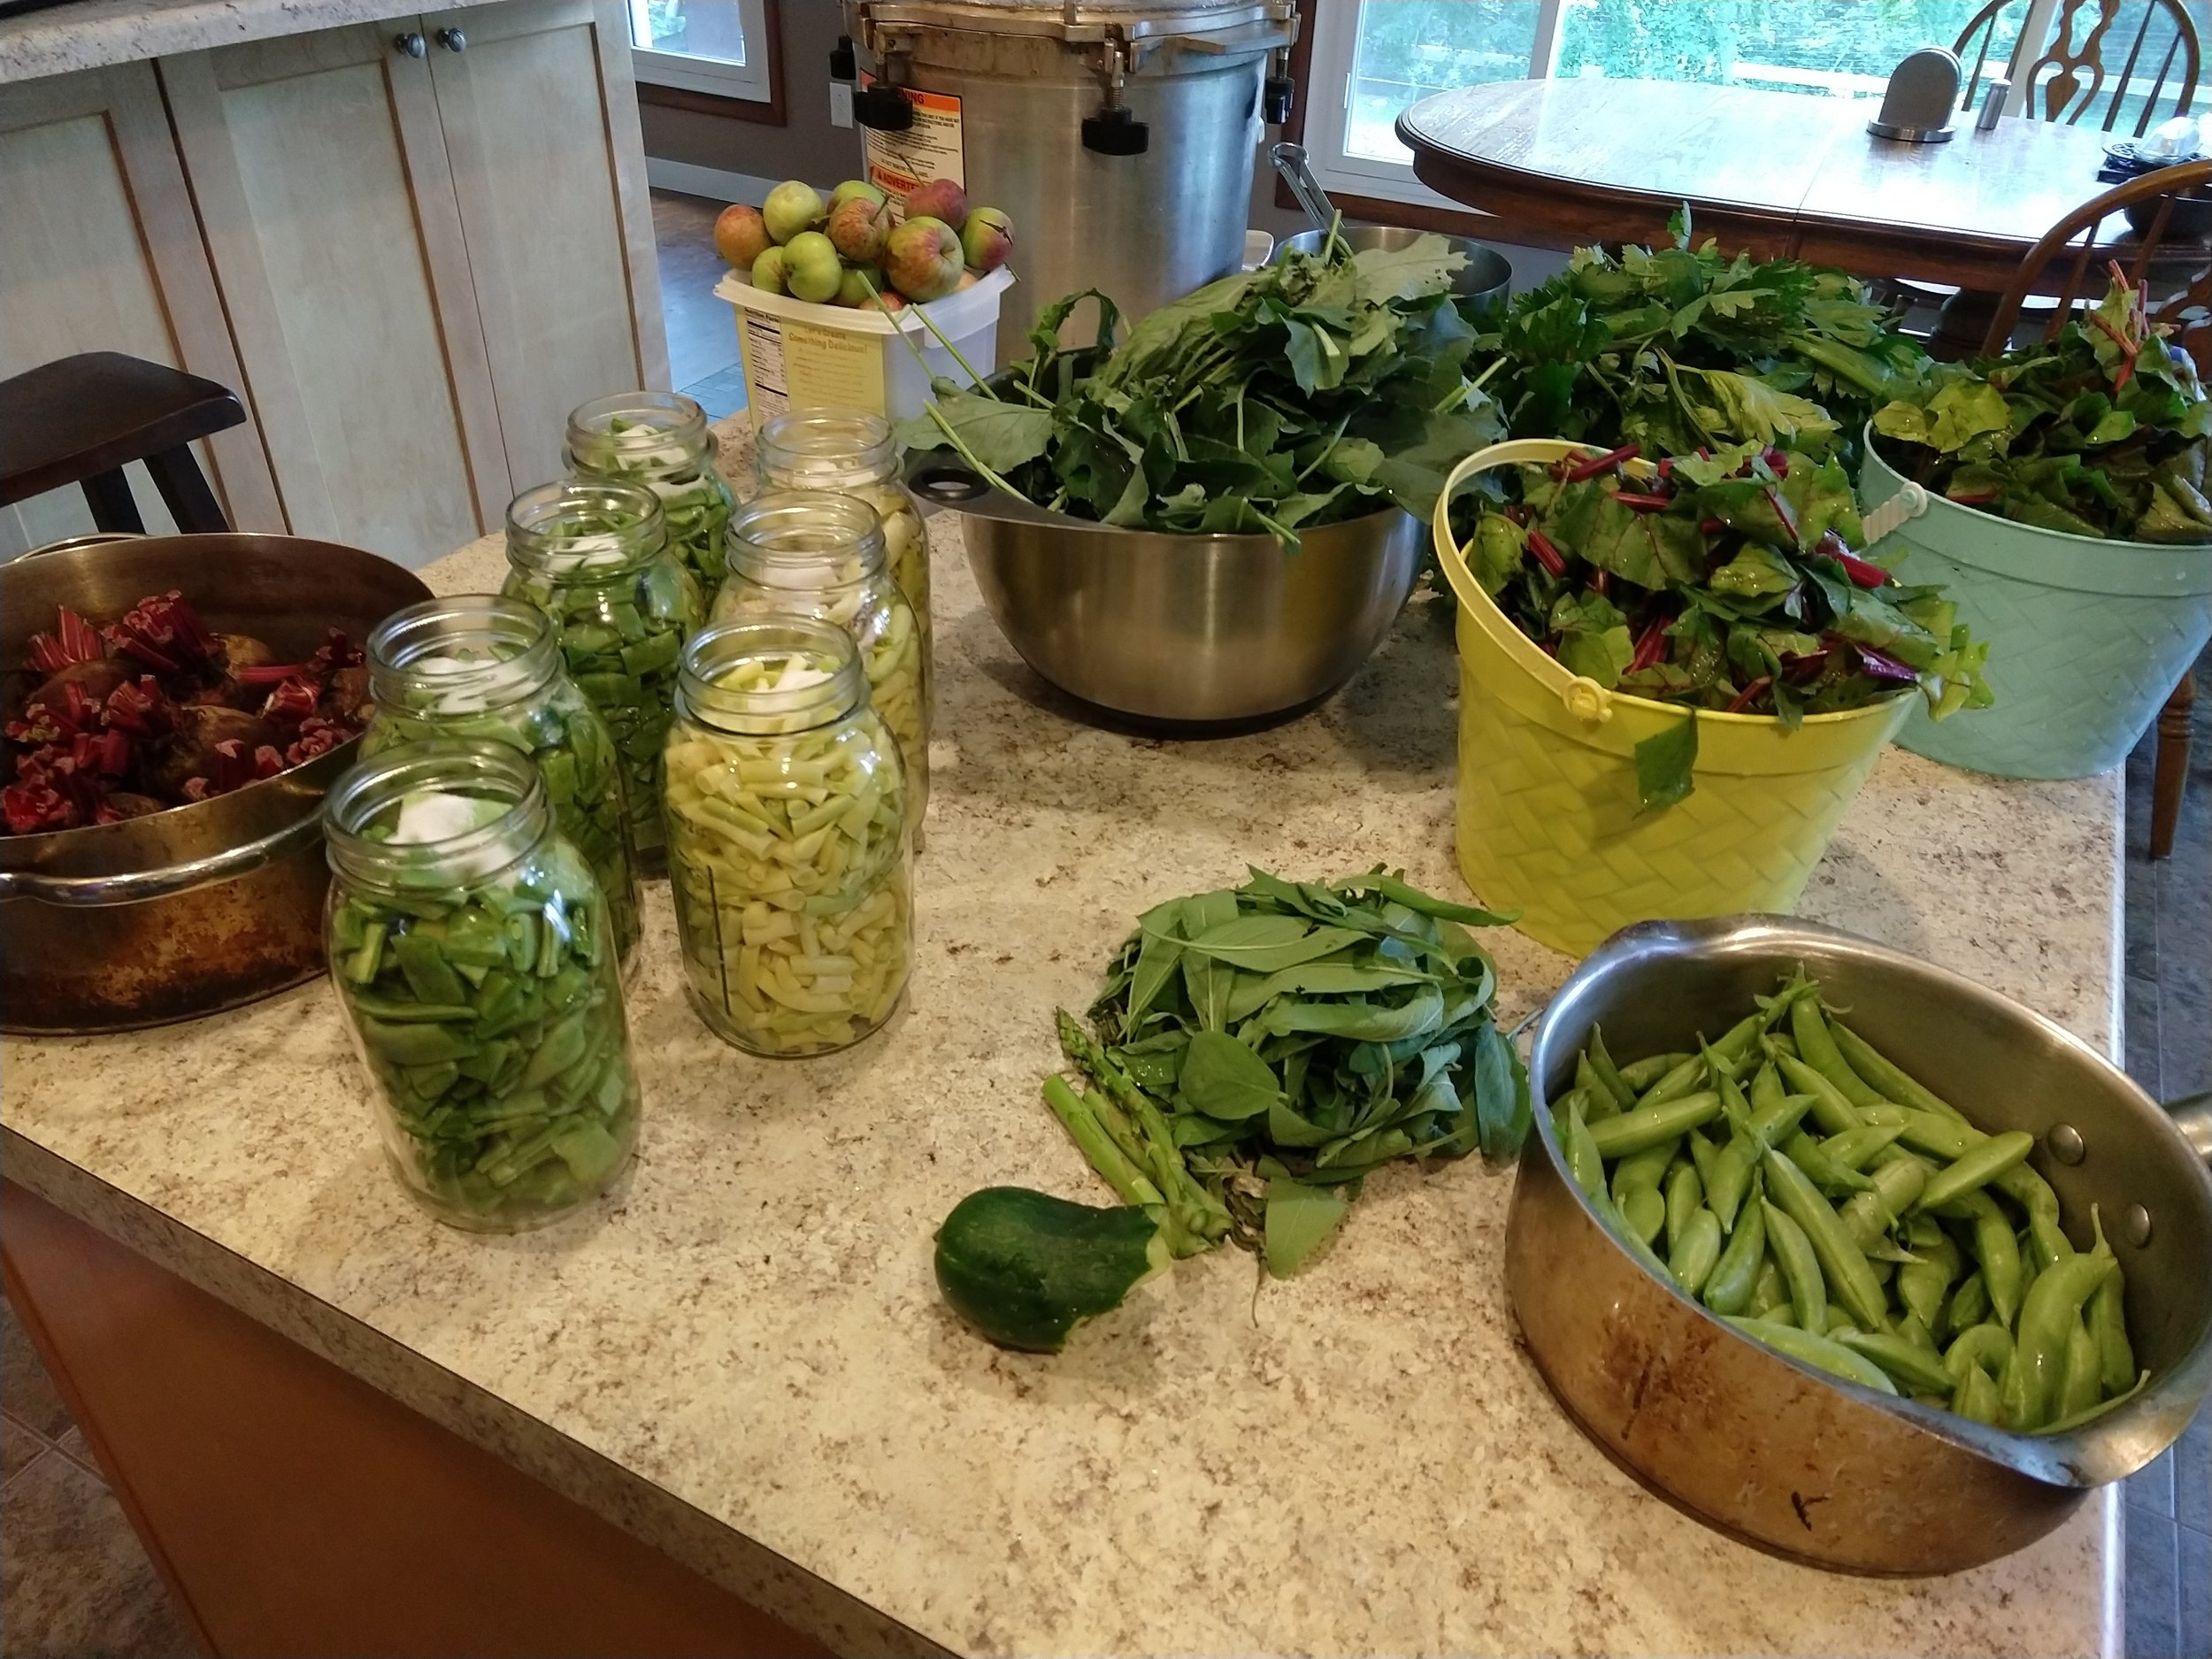 Here's the morning's fresh pickings, ready for cooking, canning, and freezing!